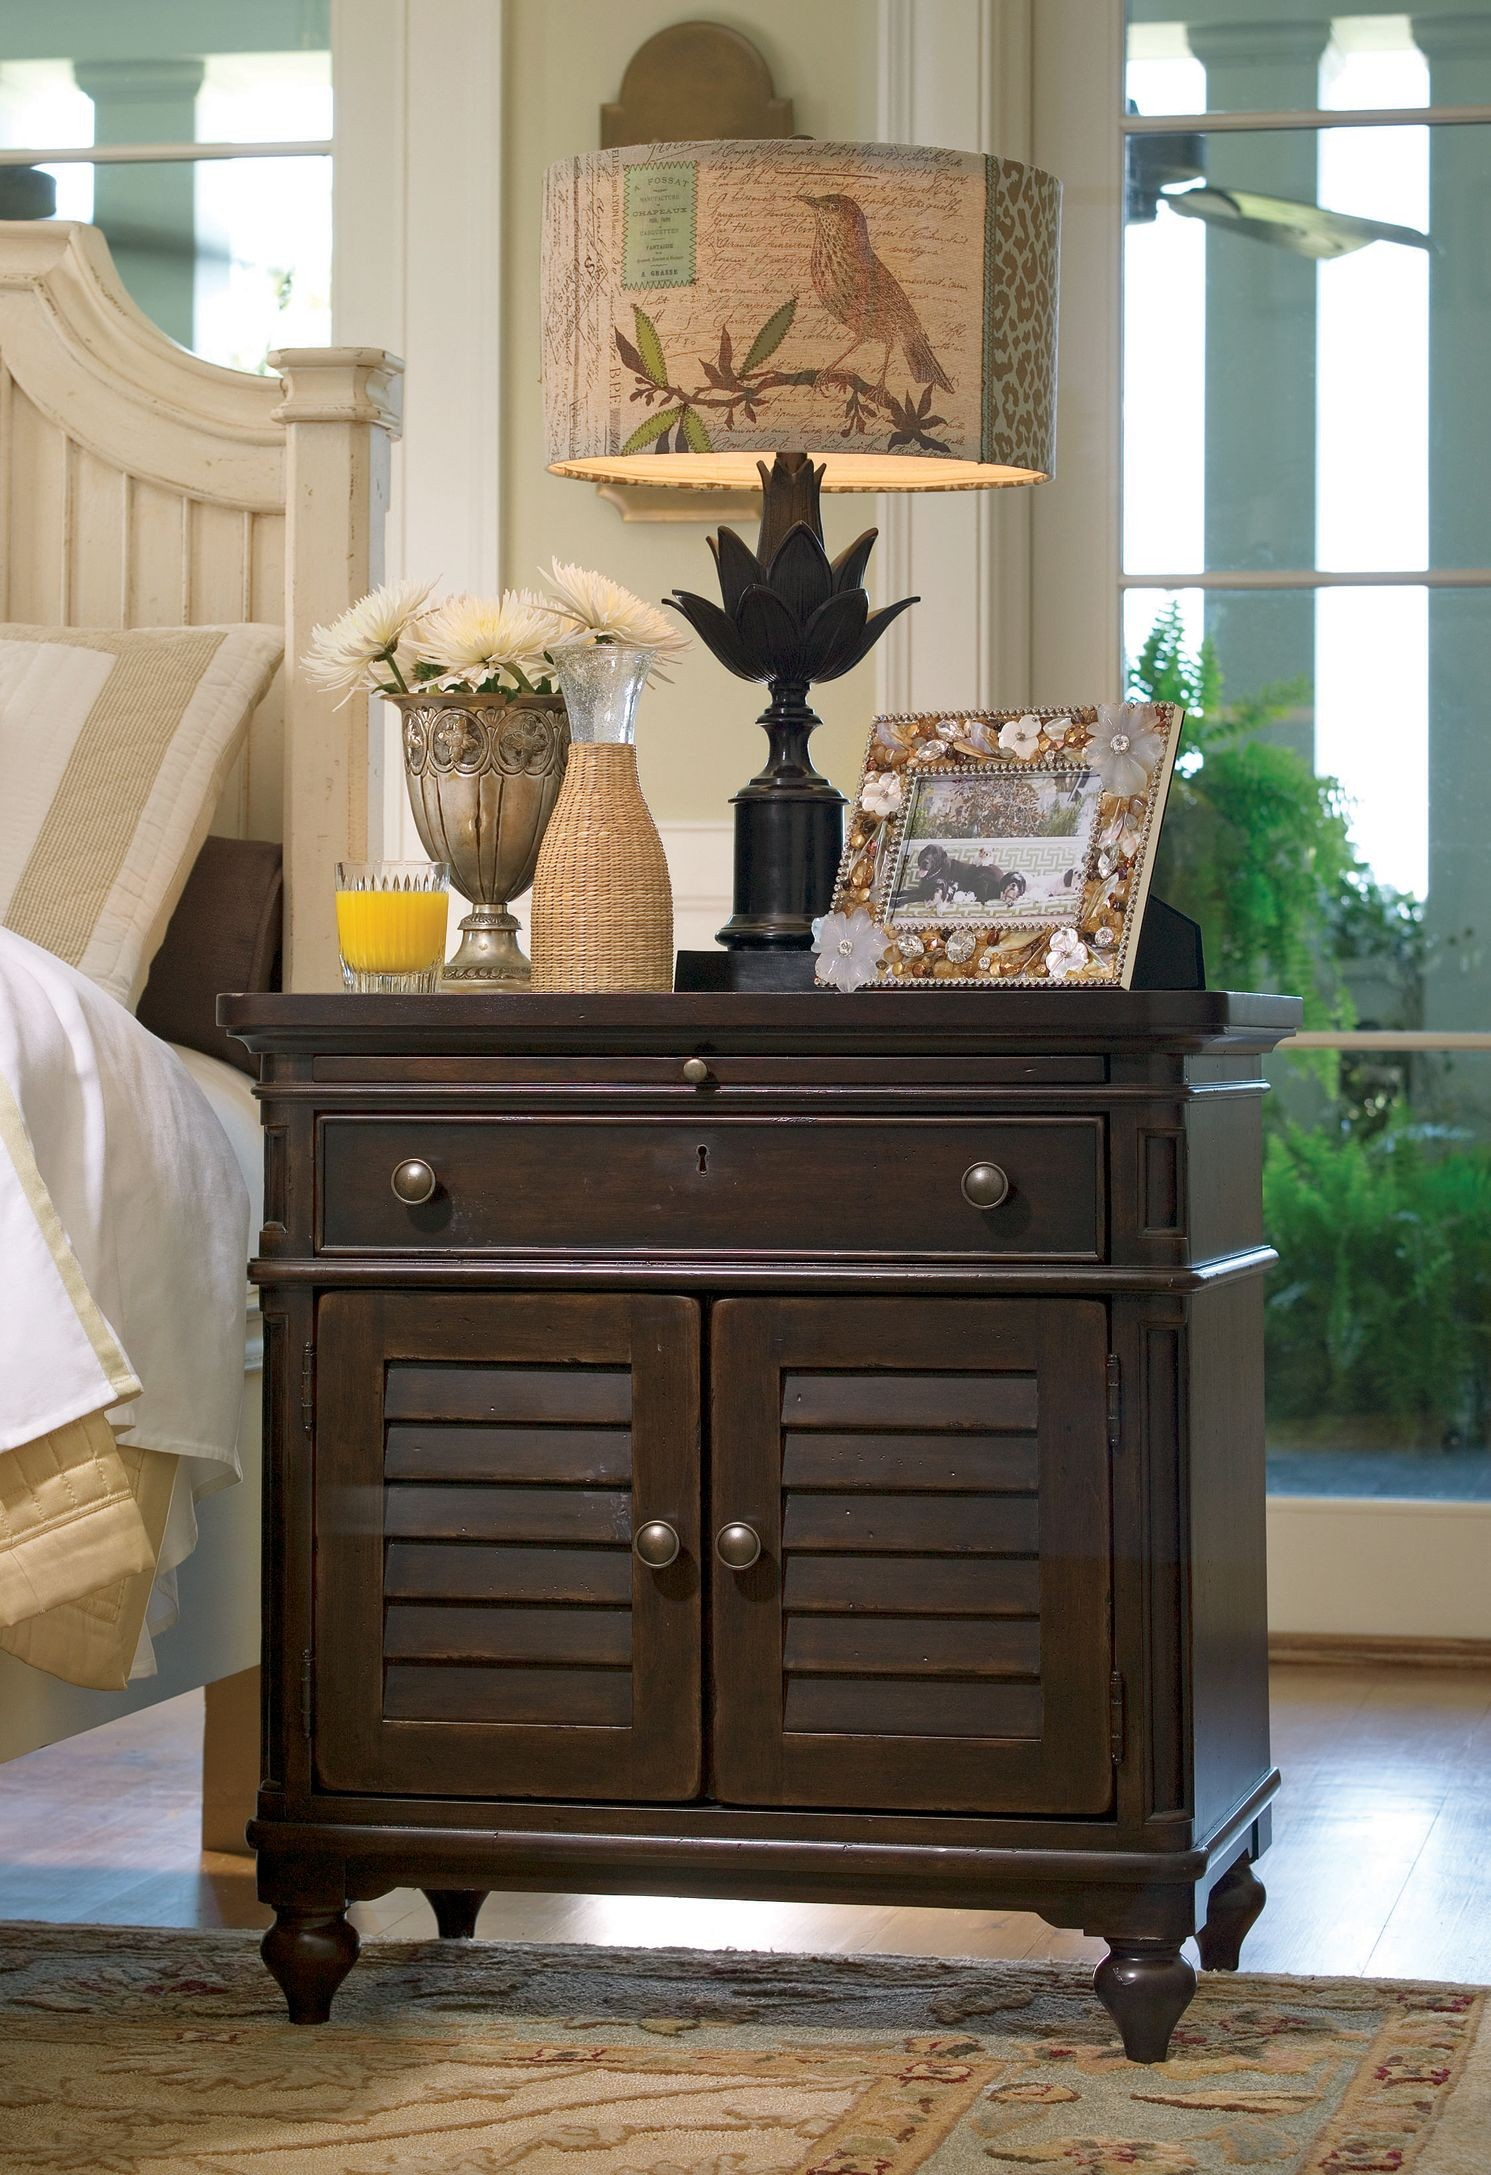 Paula deen home tobacco steel magnolia bedroom set from - Steel magnolia bedroom furniture ...